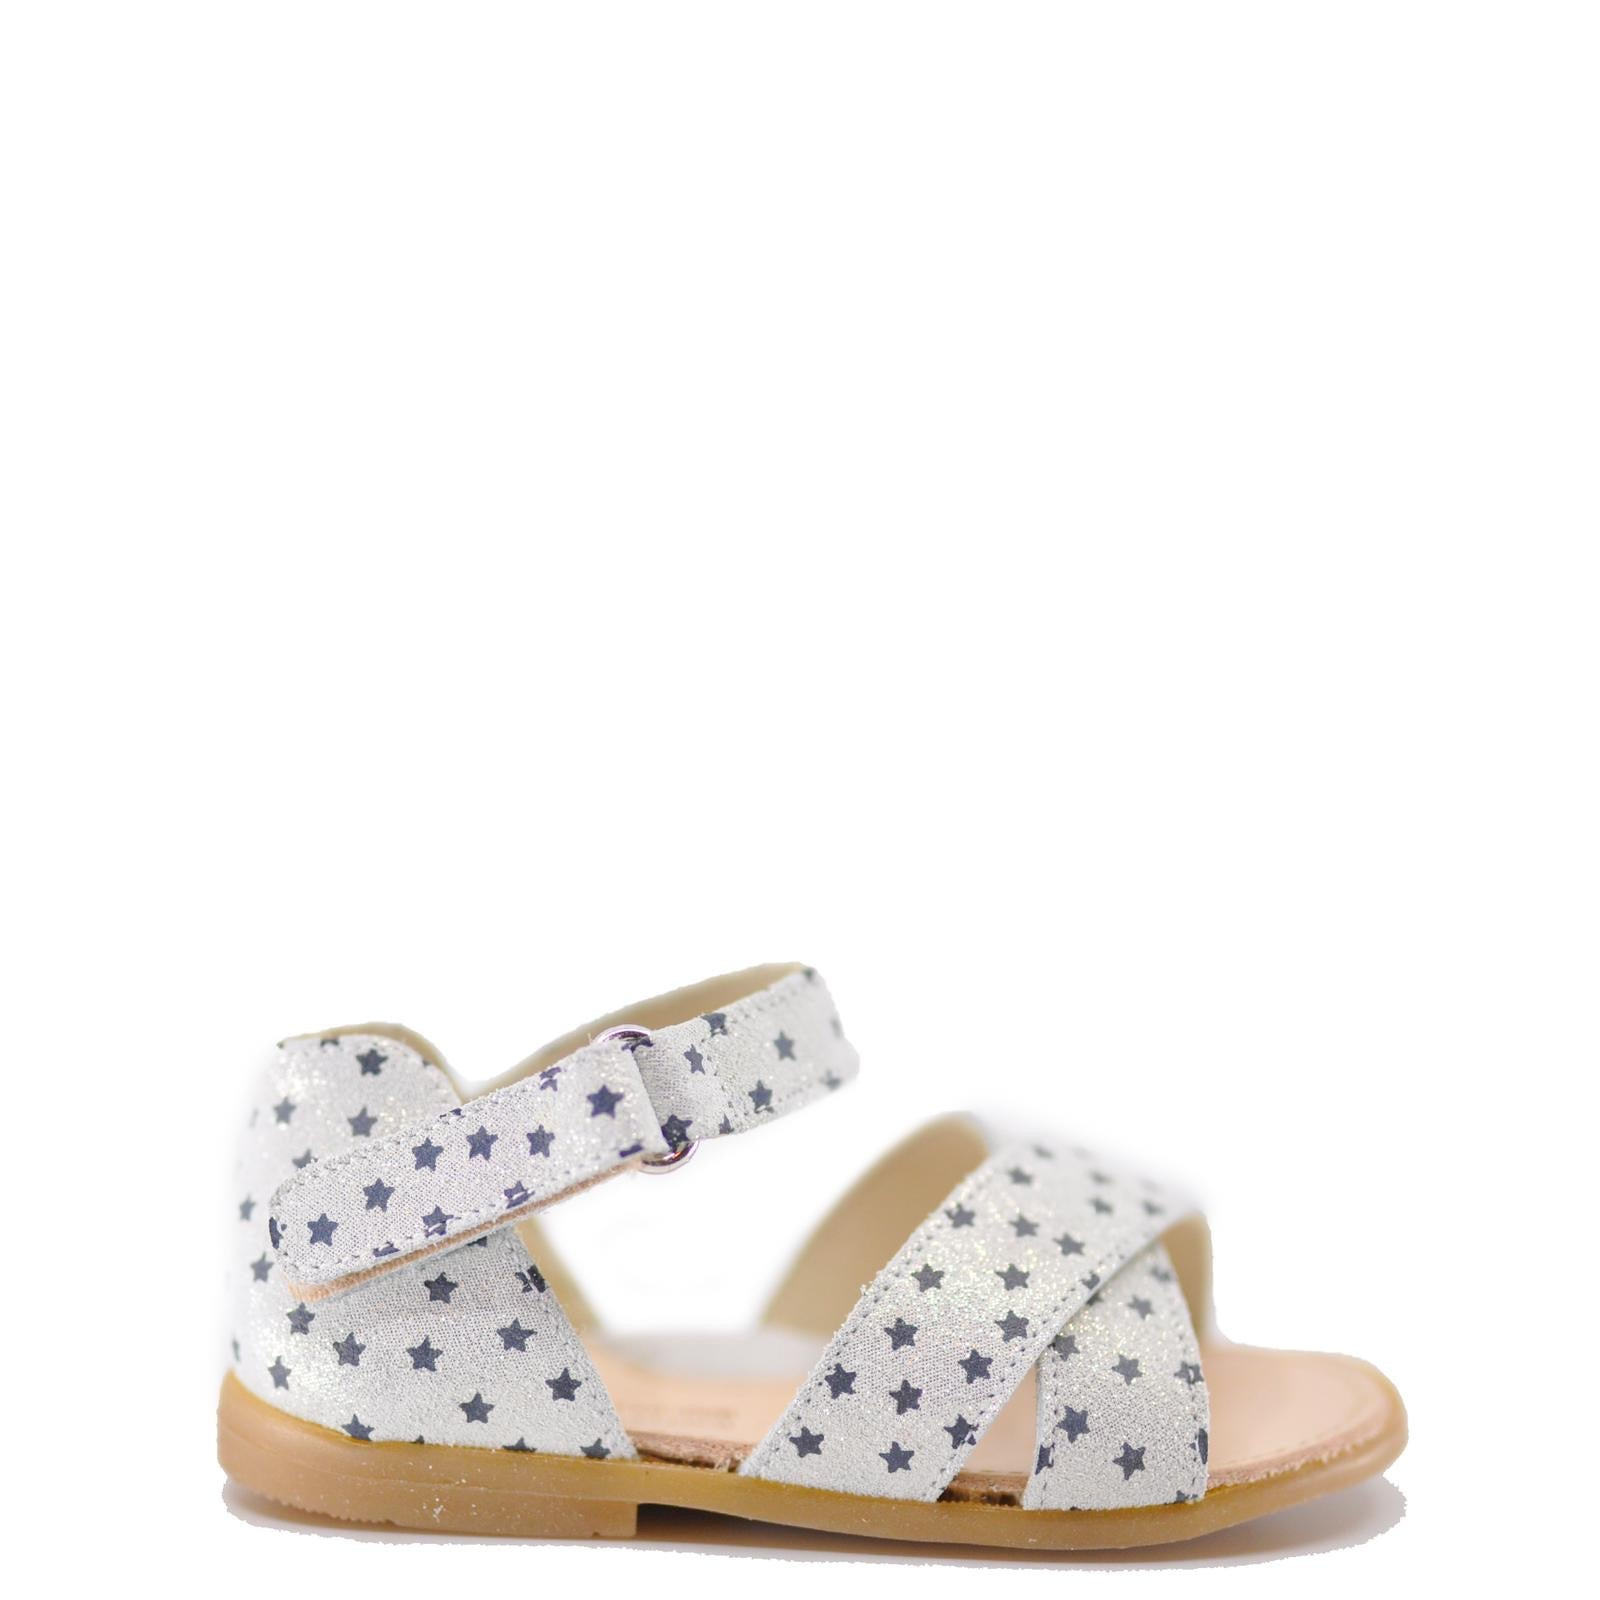 Pepe White Star Baby Sandal-Tassel Children Shoes